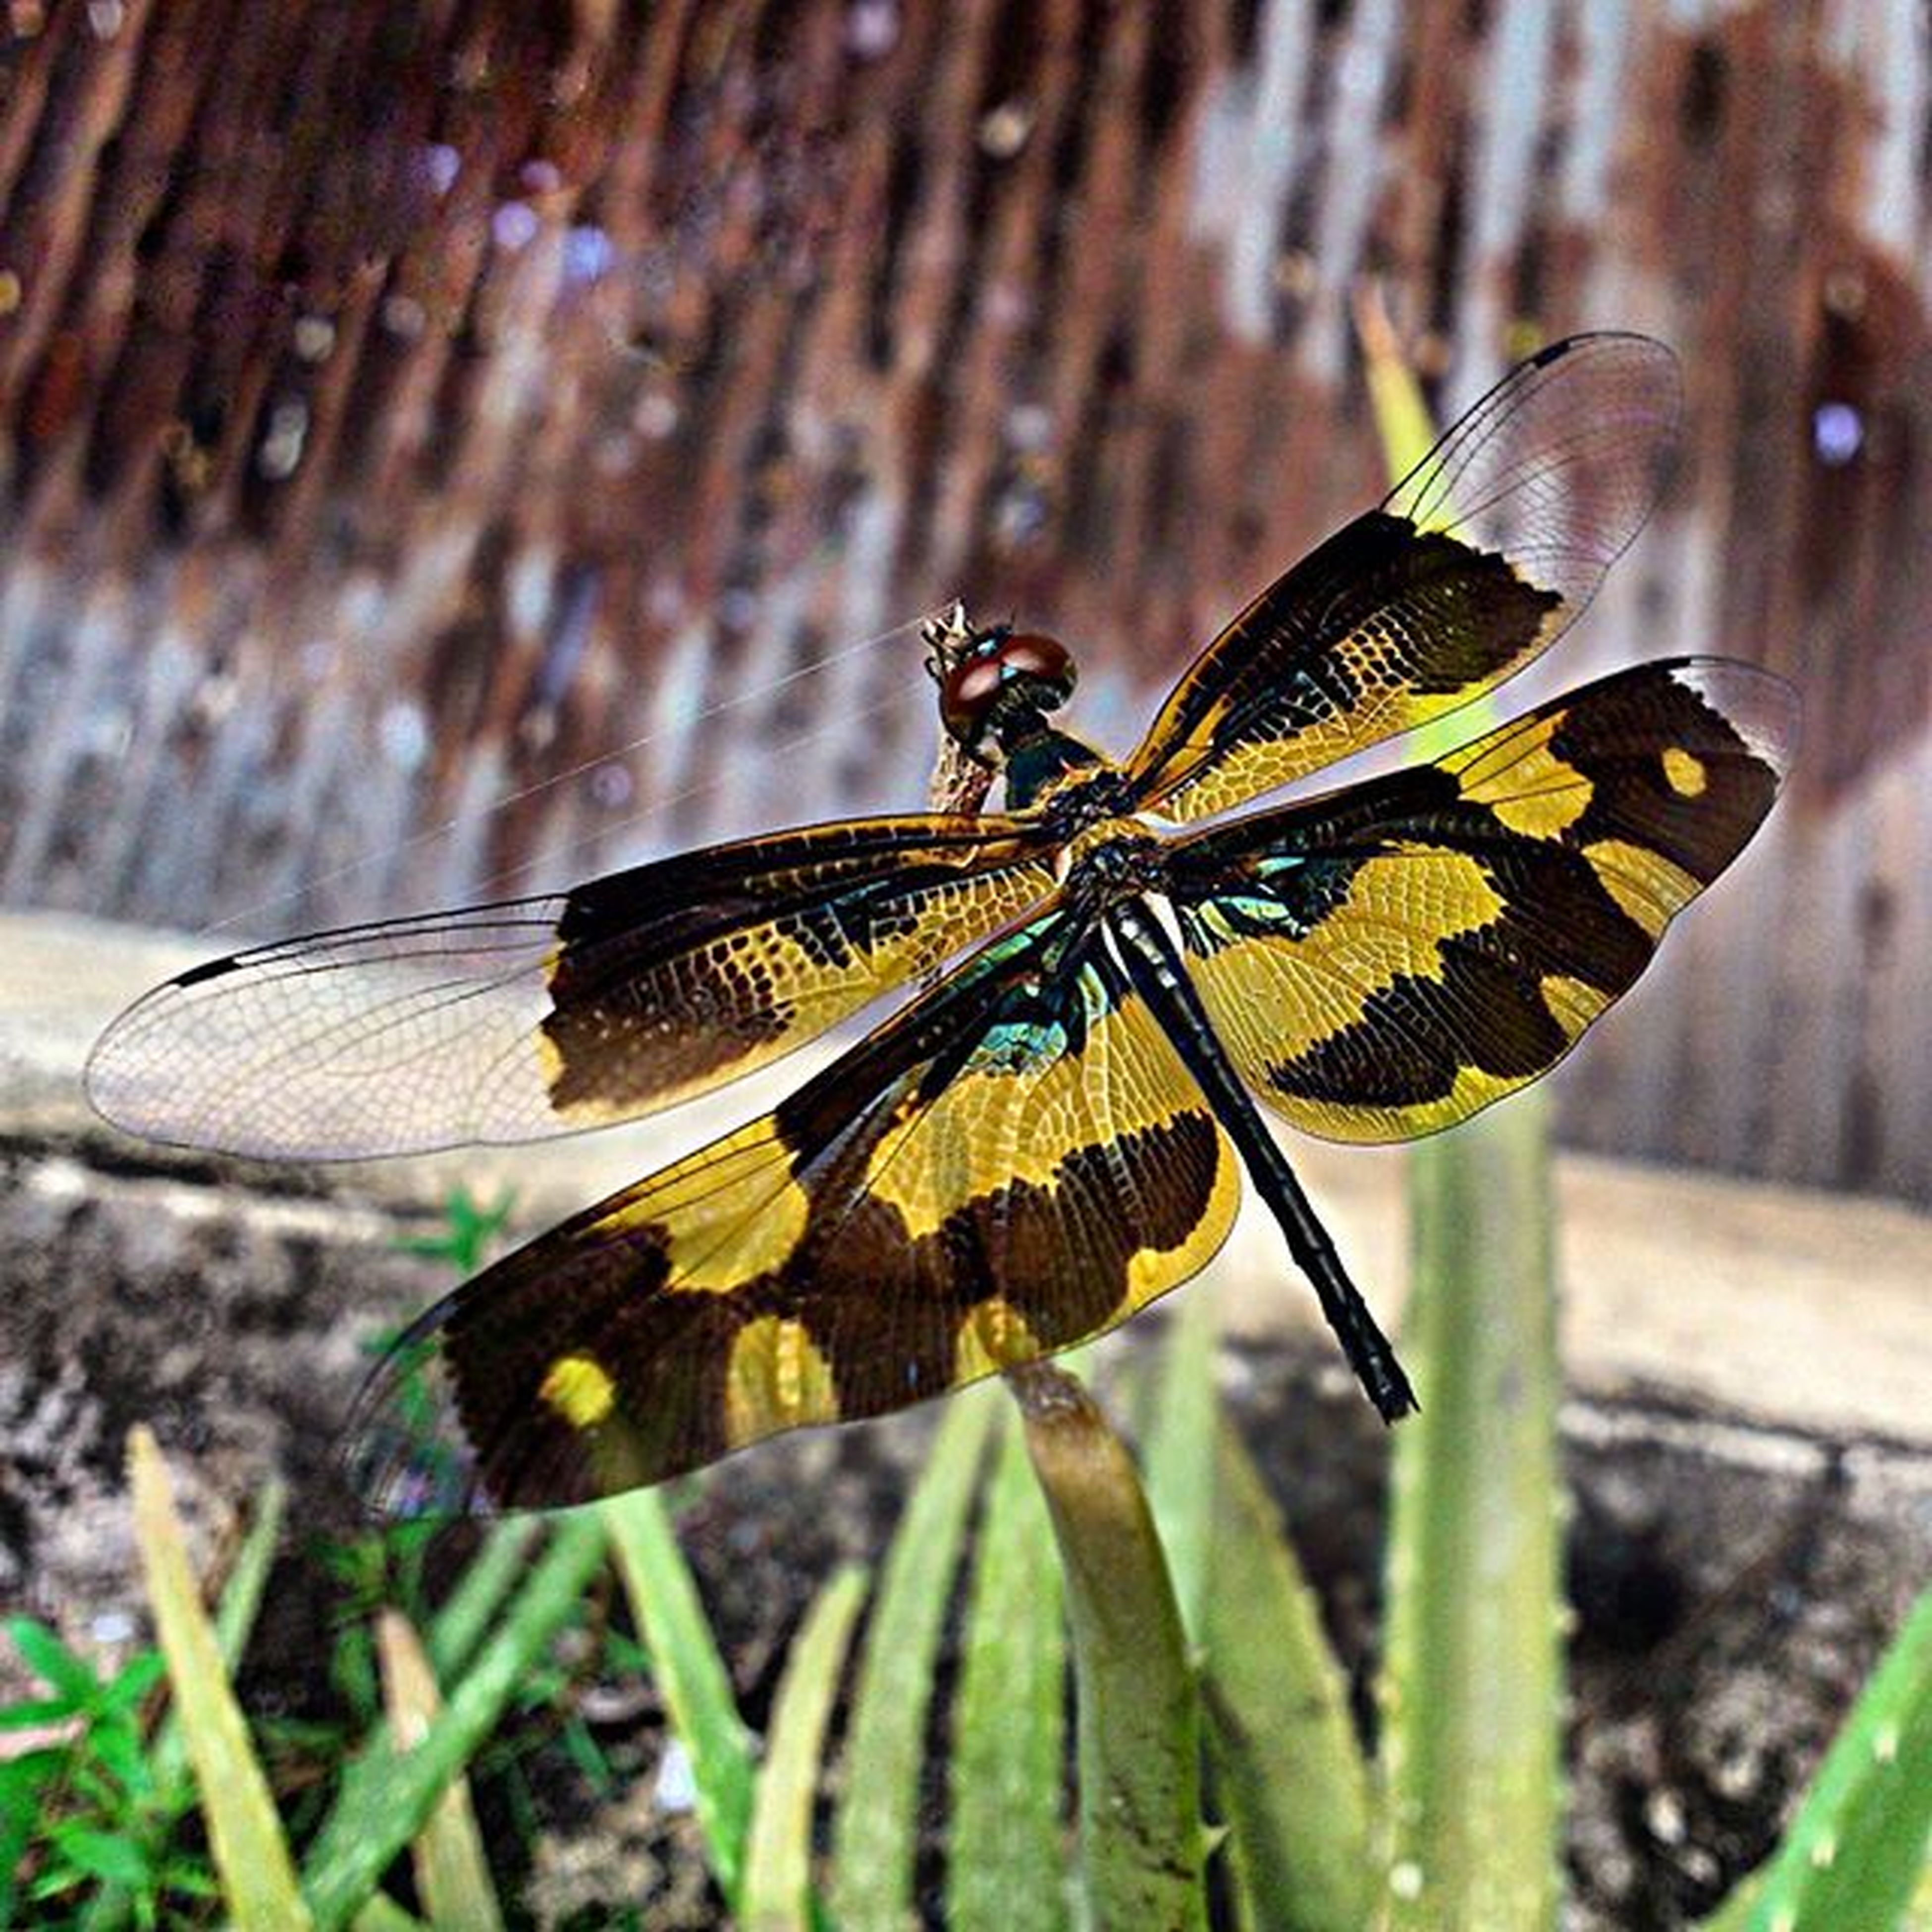 insect, animals in the wild, one animal, animal themes, wildlife, close-up, butterfly - insect, focus on foreground, butterfly, leaf, animal wing, natural pattern, animal markings, nature, day, animal antenna, fragility, outdoors, wood - material, plant